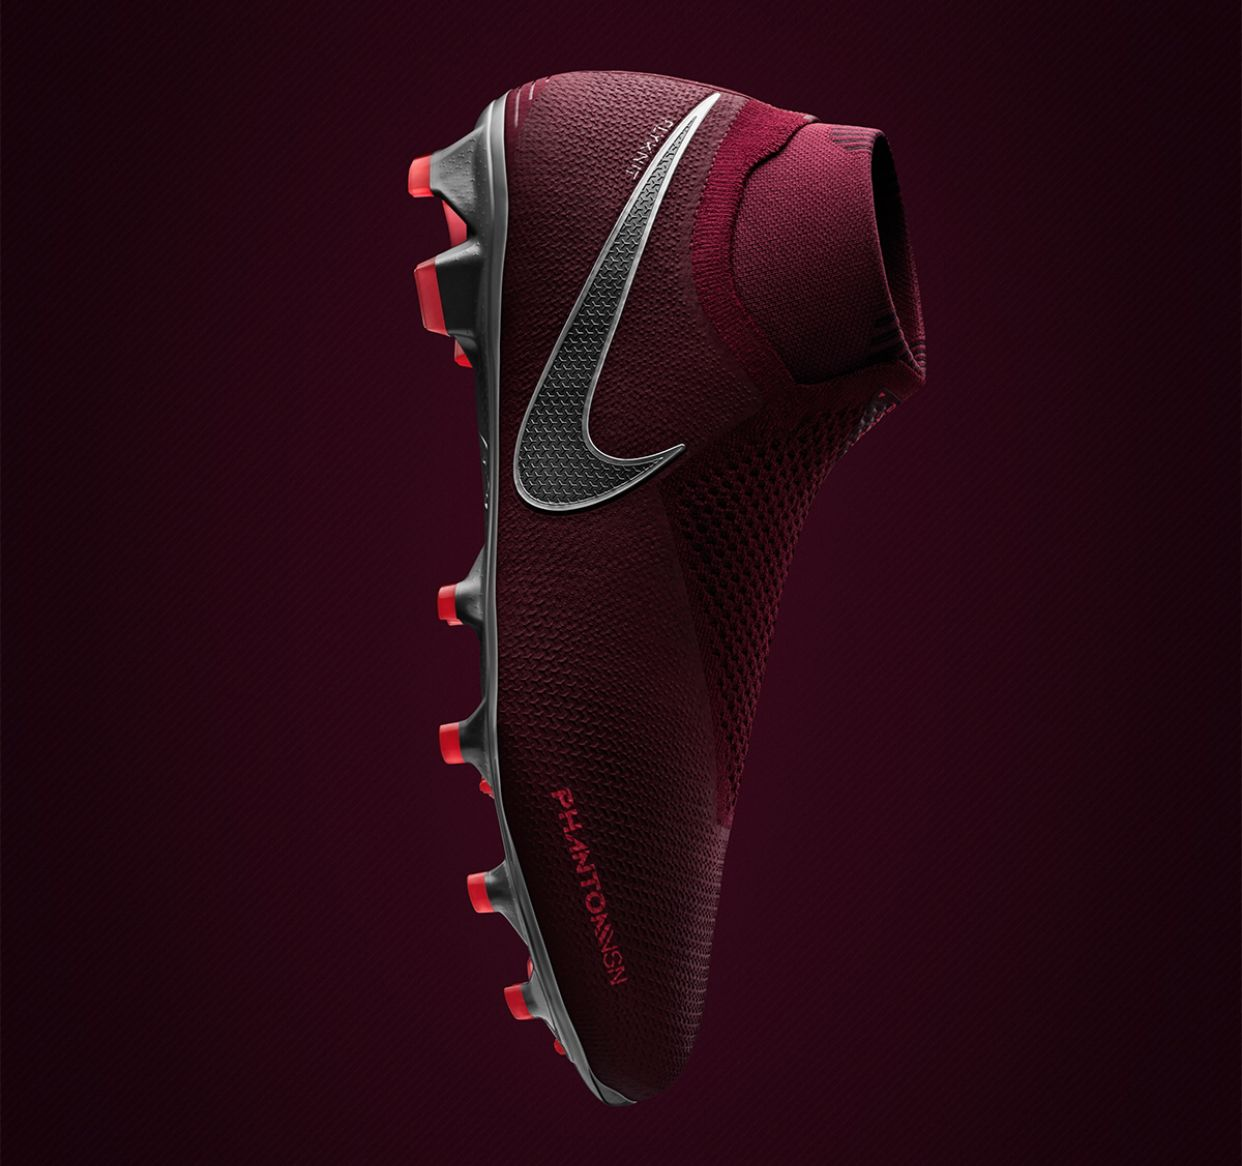 Pin By Flashgb1 On Nike Cool Football Boots Soccer Shoes Nike Soccer Shoes